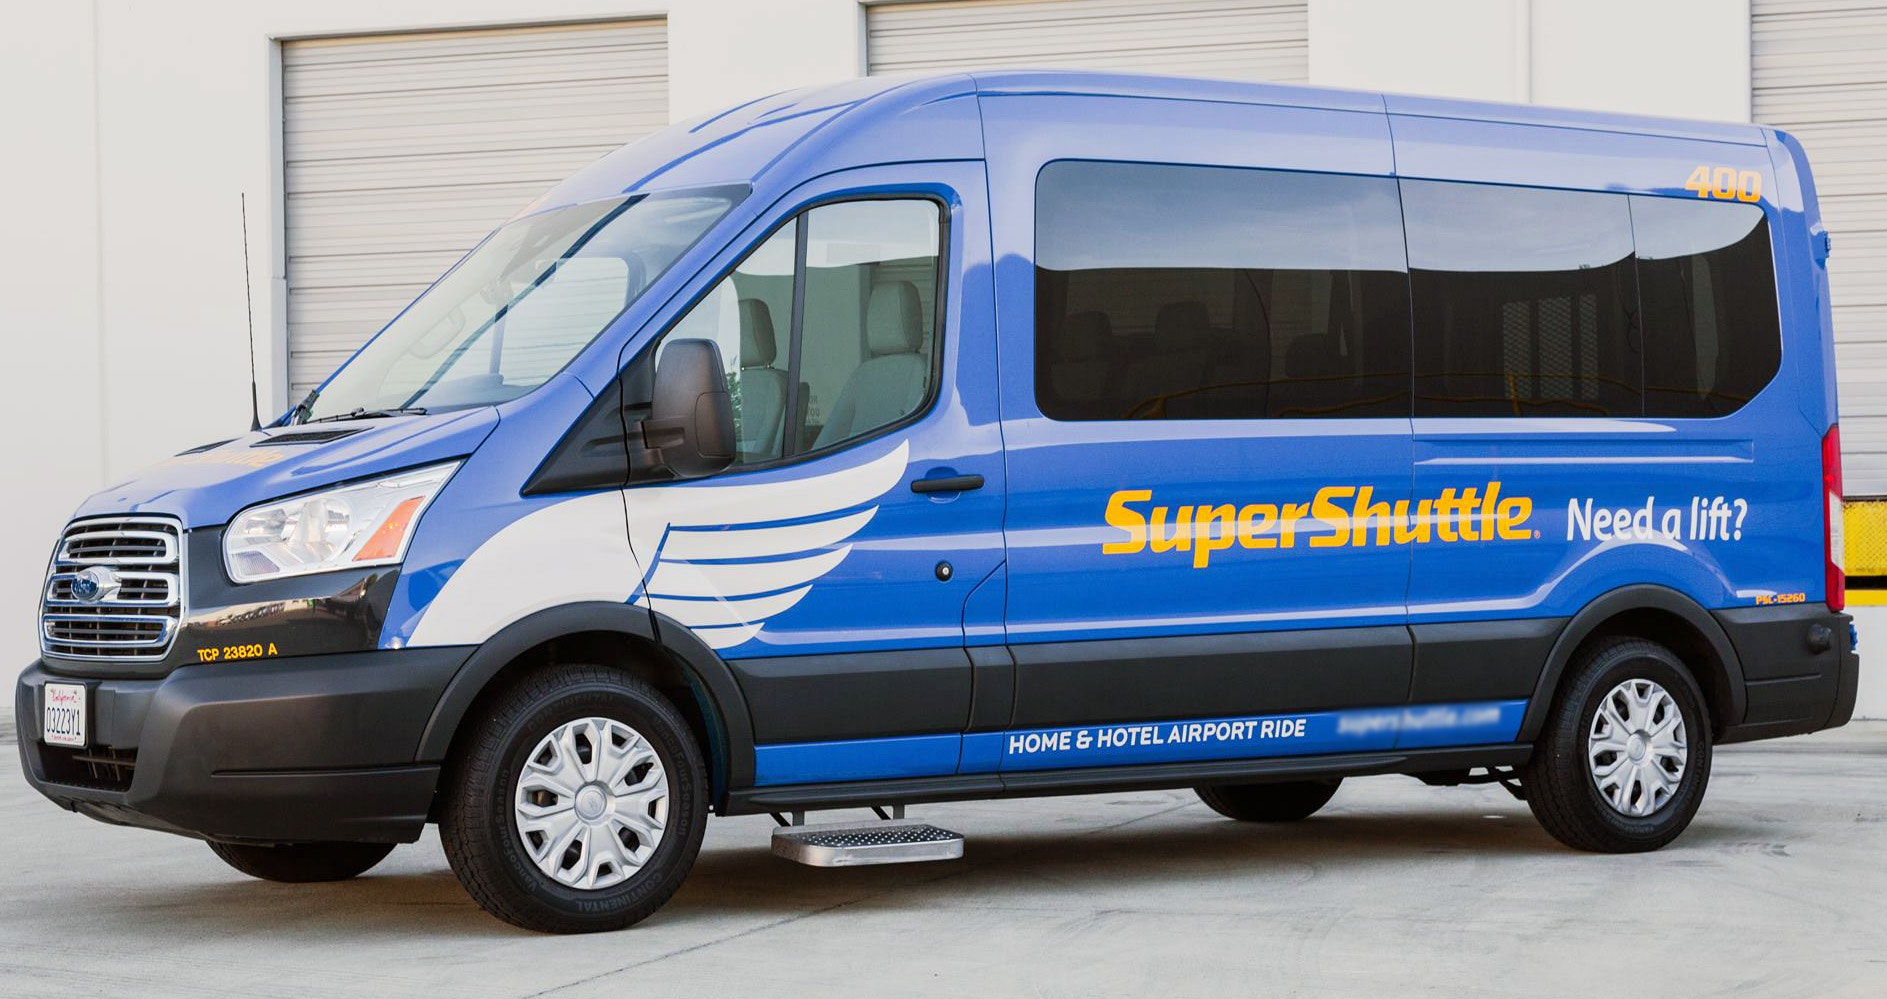 SuperShuttle vehicle 1